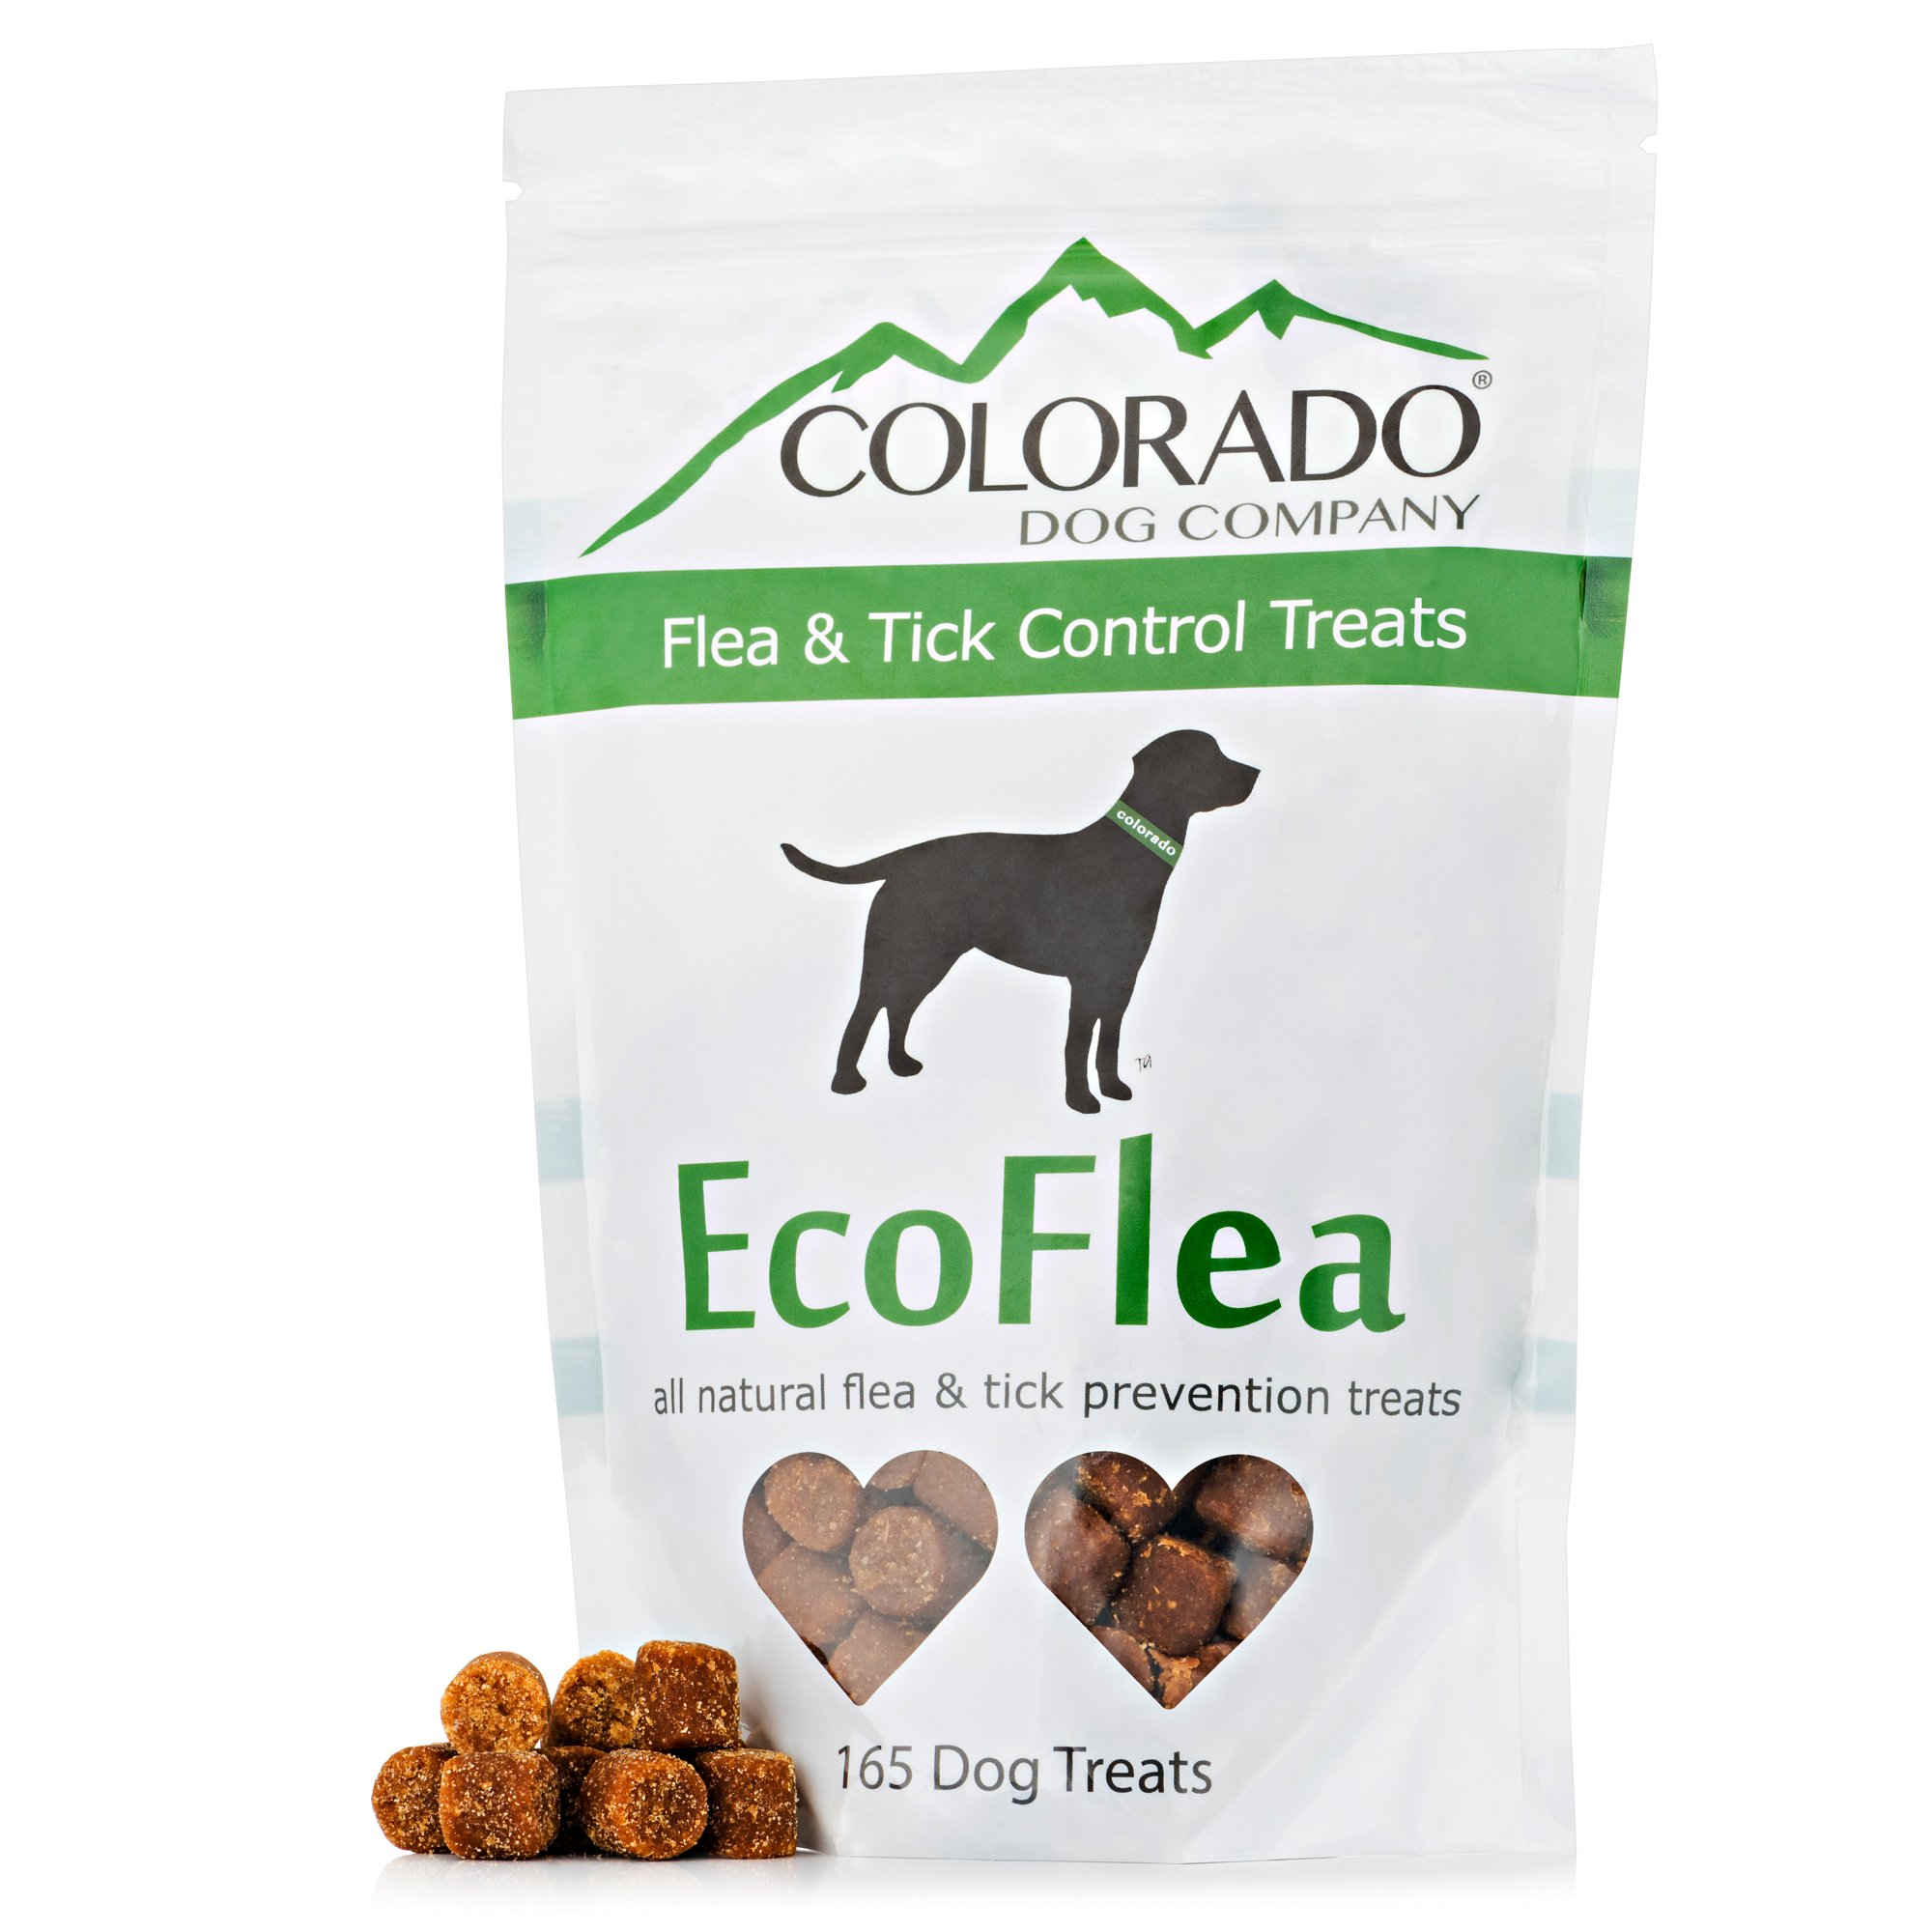 EcoFlea by ColoradoDog Treats - The All Natural Flea & Tick Prevention Dog Treat